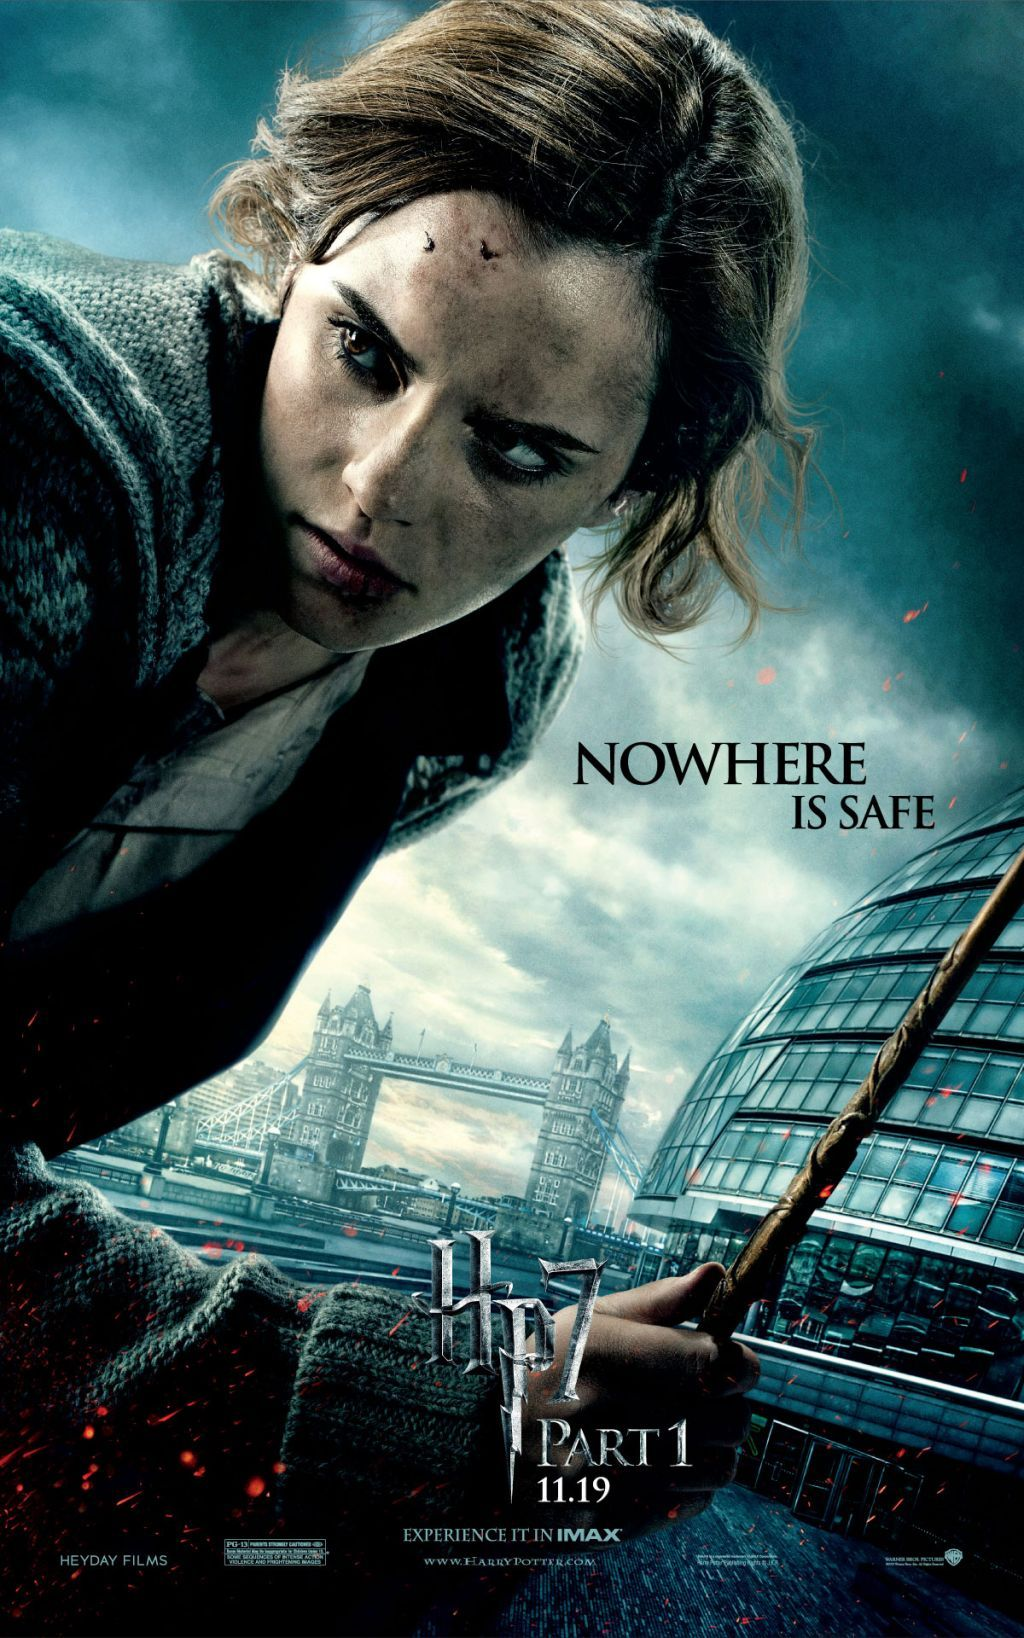 Hermione - Harry Potter and the Deathly Hallows: Part I